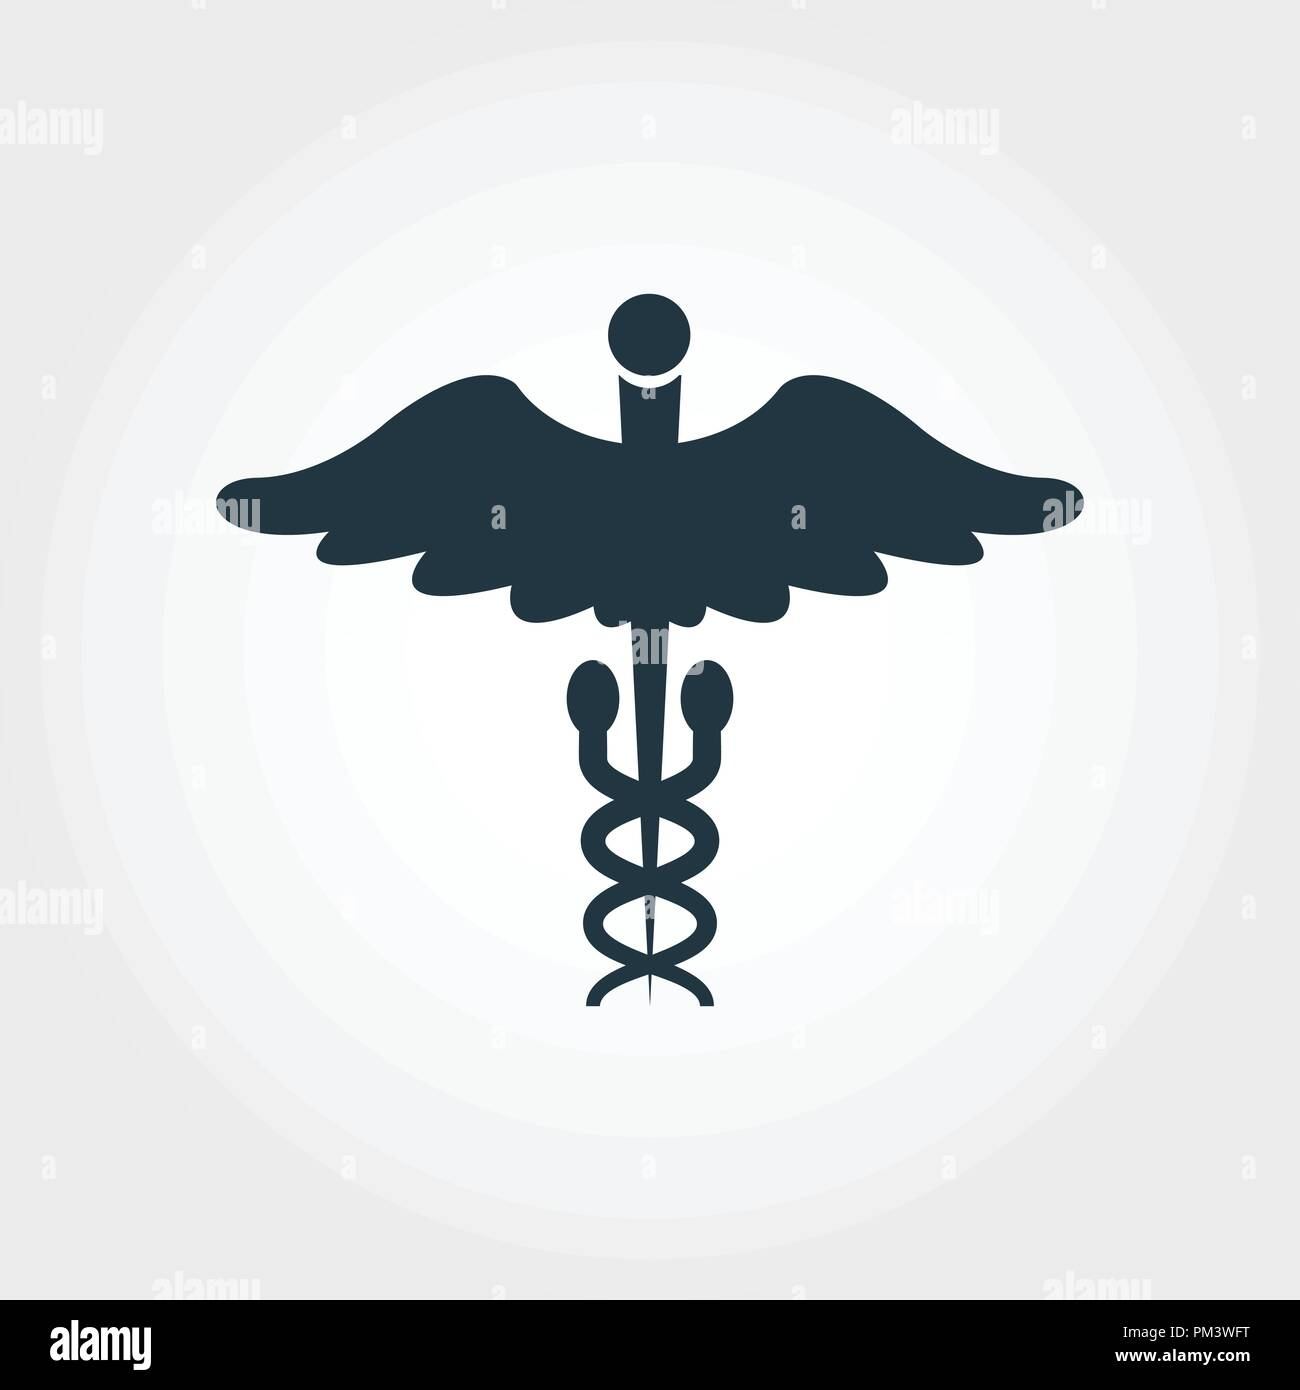 Caduceus Glyph icon. Line style icon design Caduceus Glyph icon design from medicine collection. Pictogram isolated on white. Perfect for web design, apps, software, print. - Stock Image